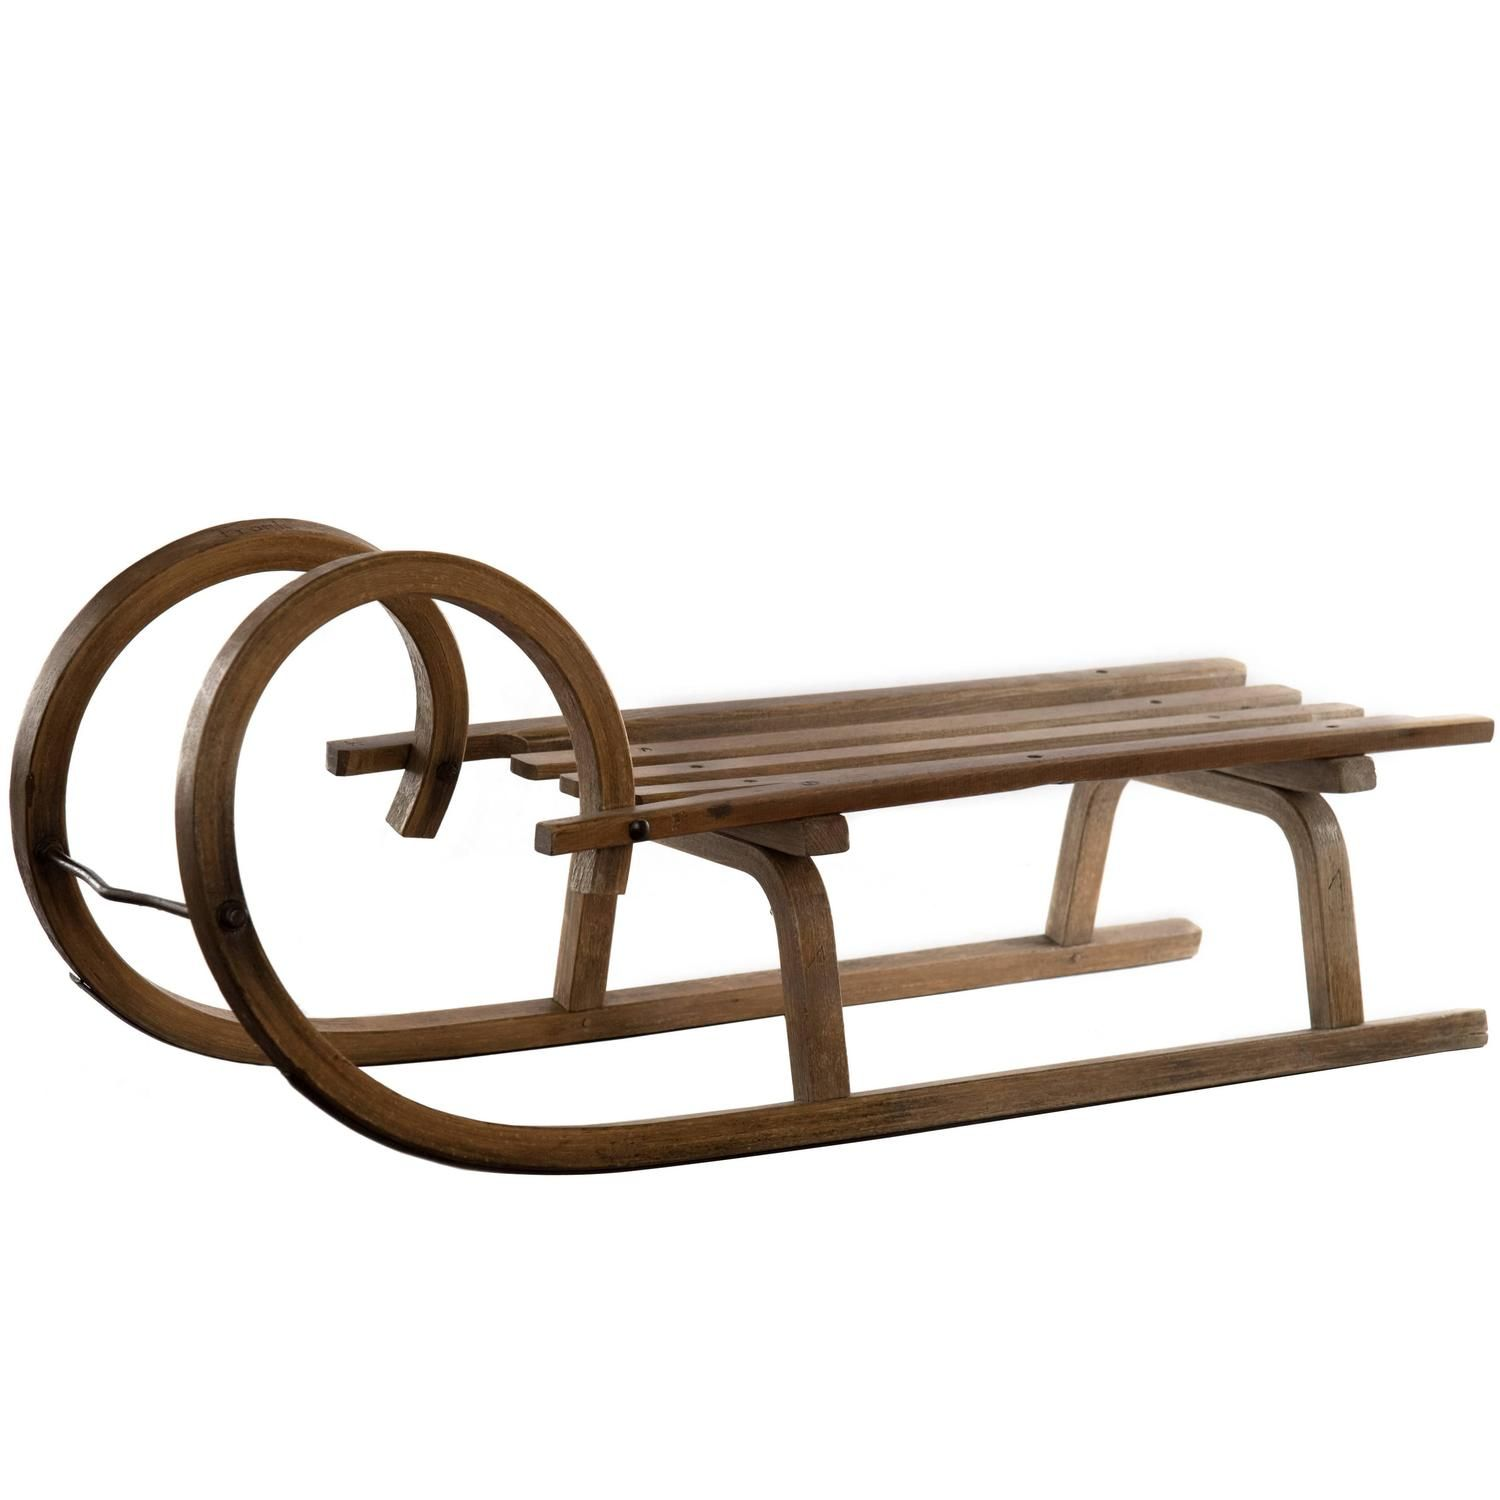 19th Century Grindelwald Ram S Horn Wooden Sled From A Unique